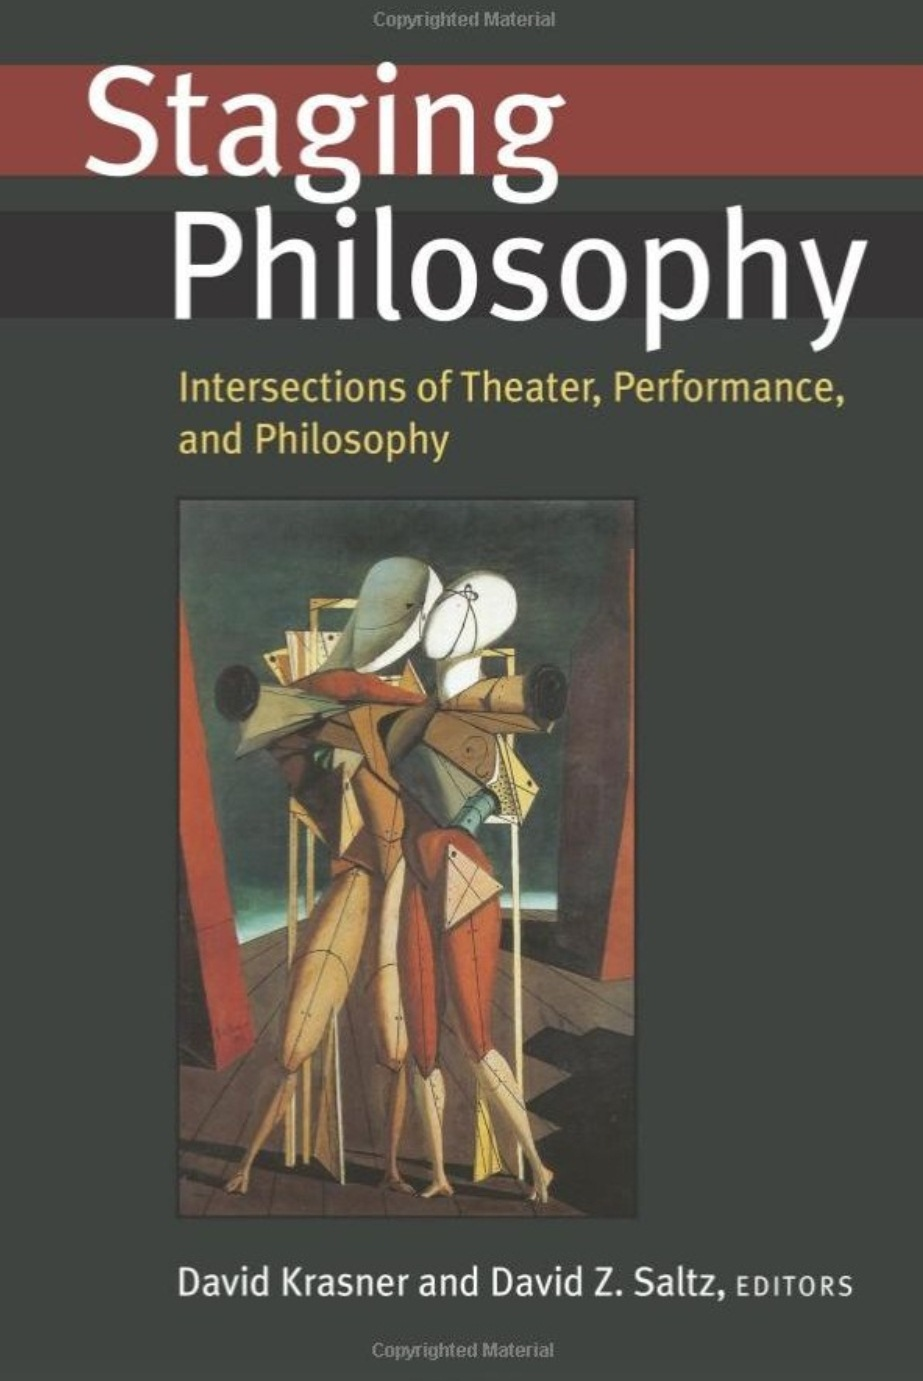 Staging Philosophy-book